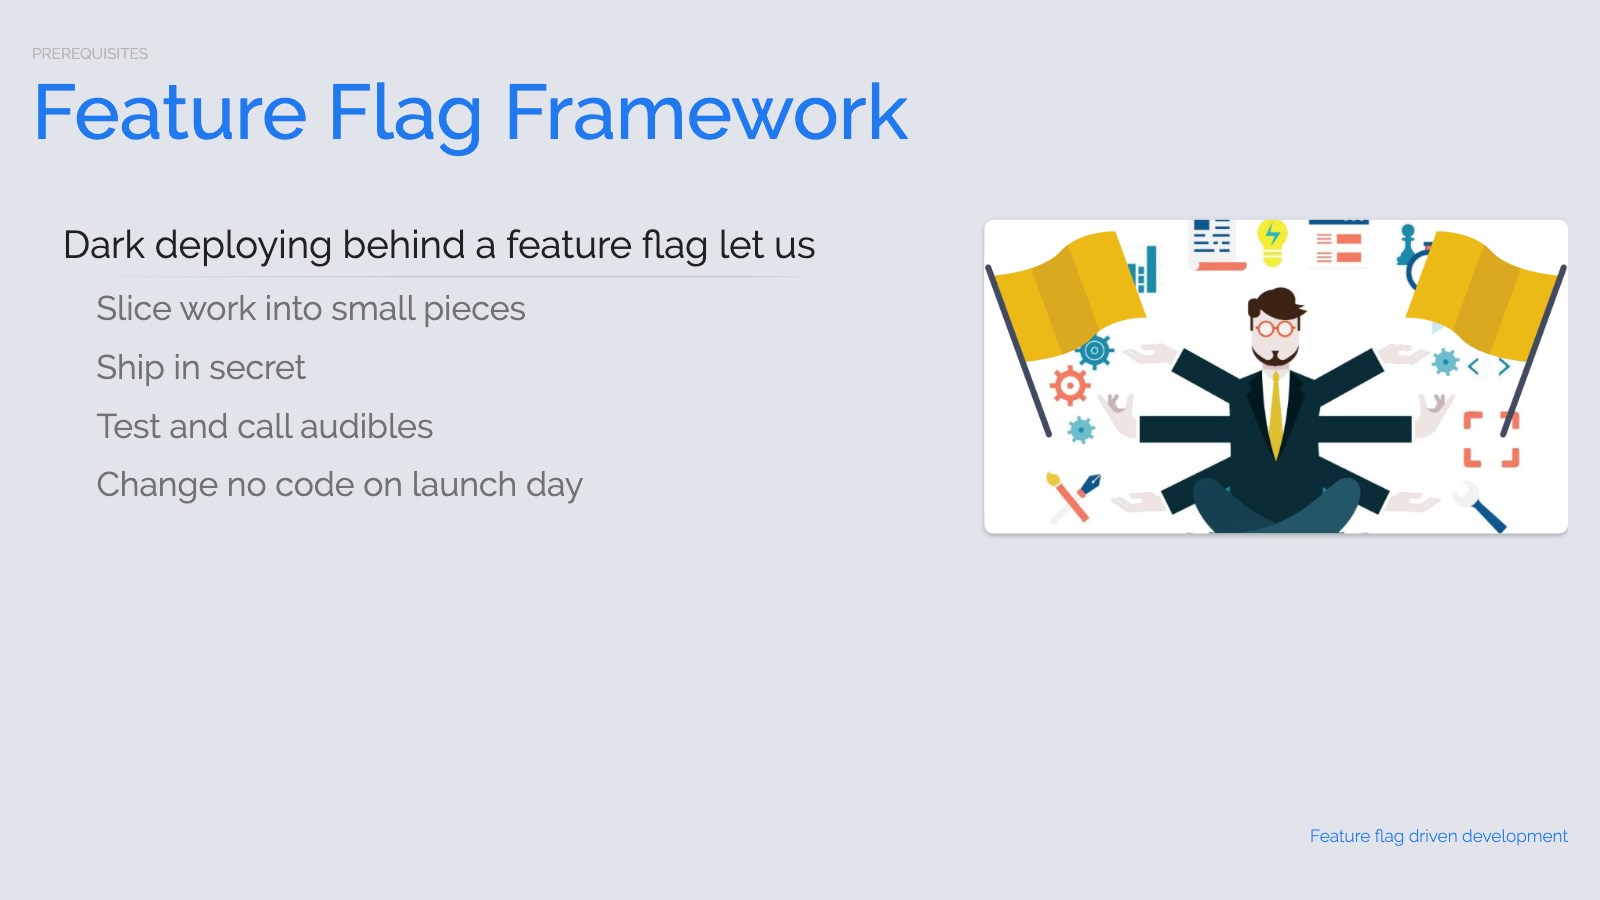 Slide content, Benefits of dark deploying behind a feature flag